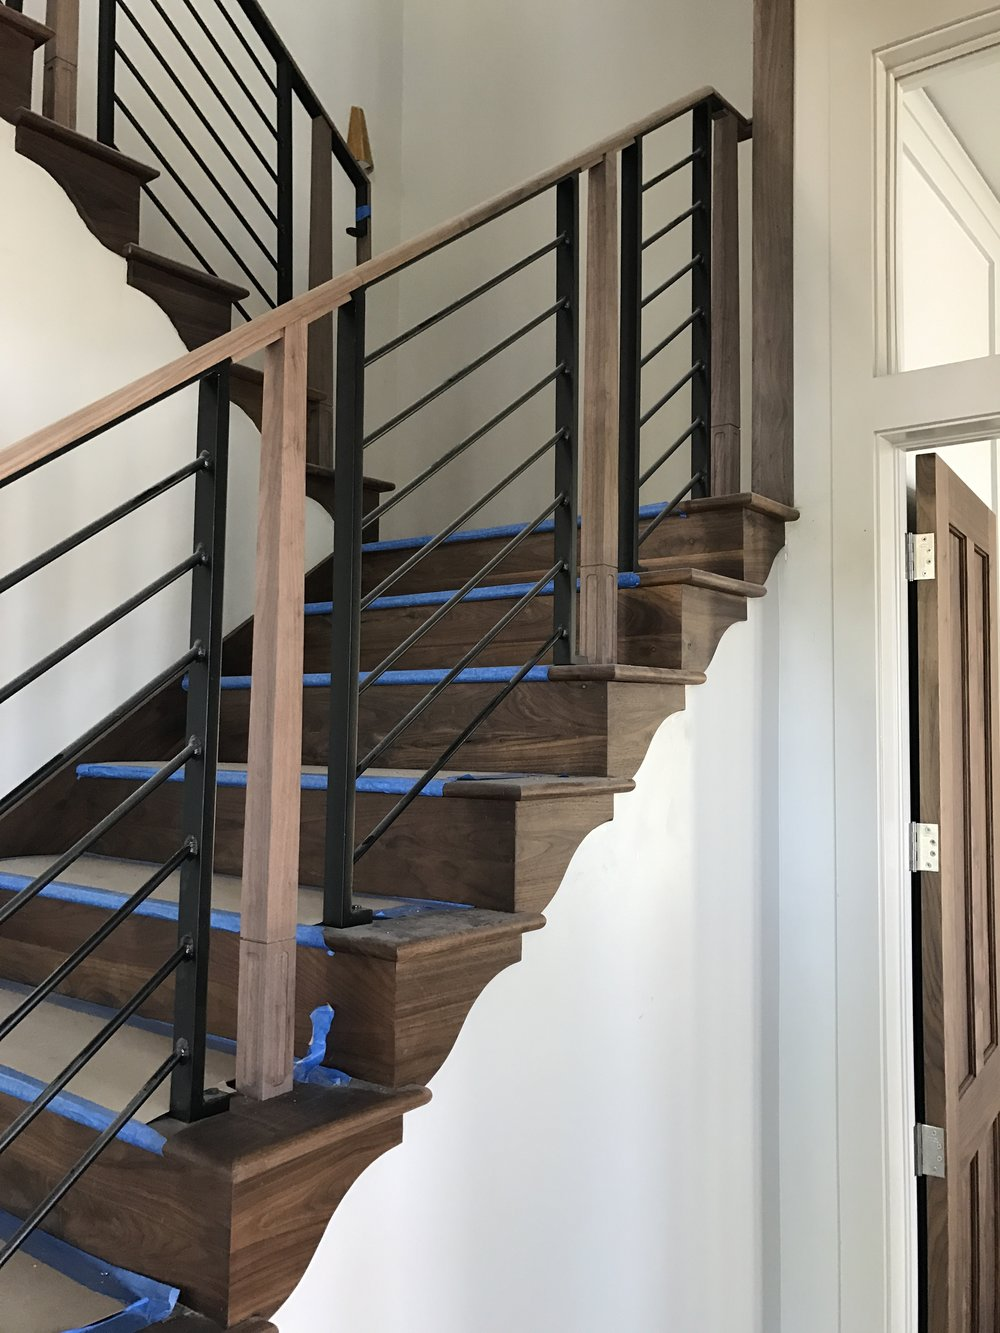 The walnut and iron stair rail looks great!